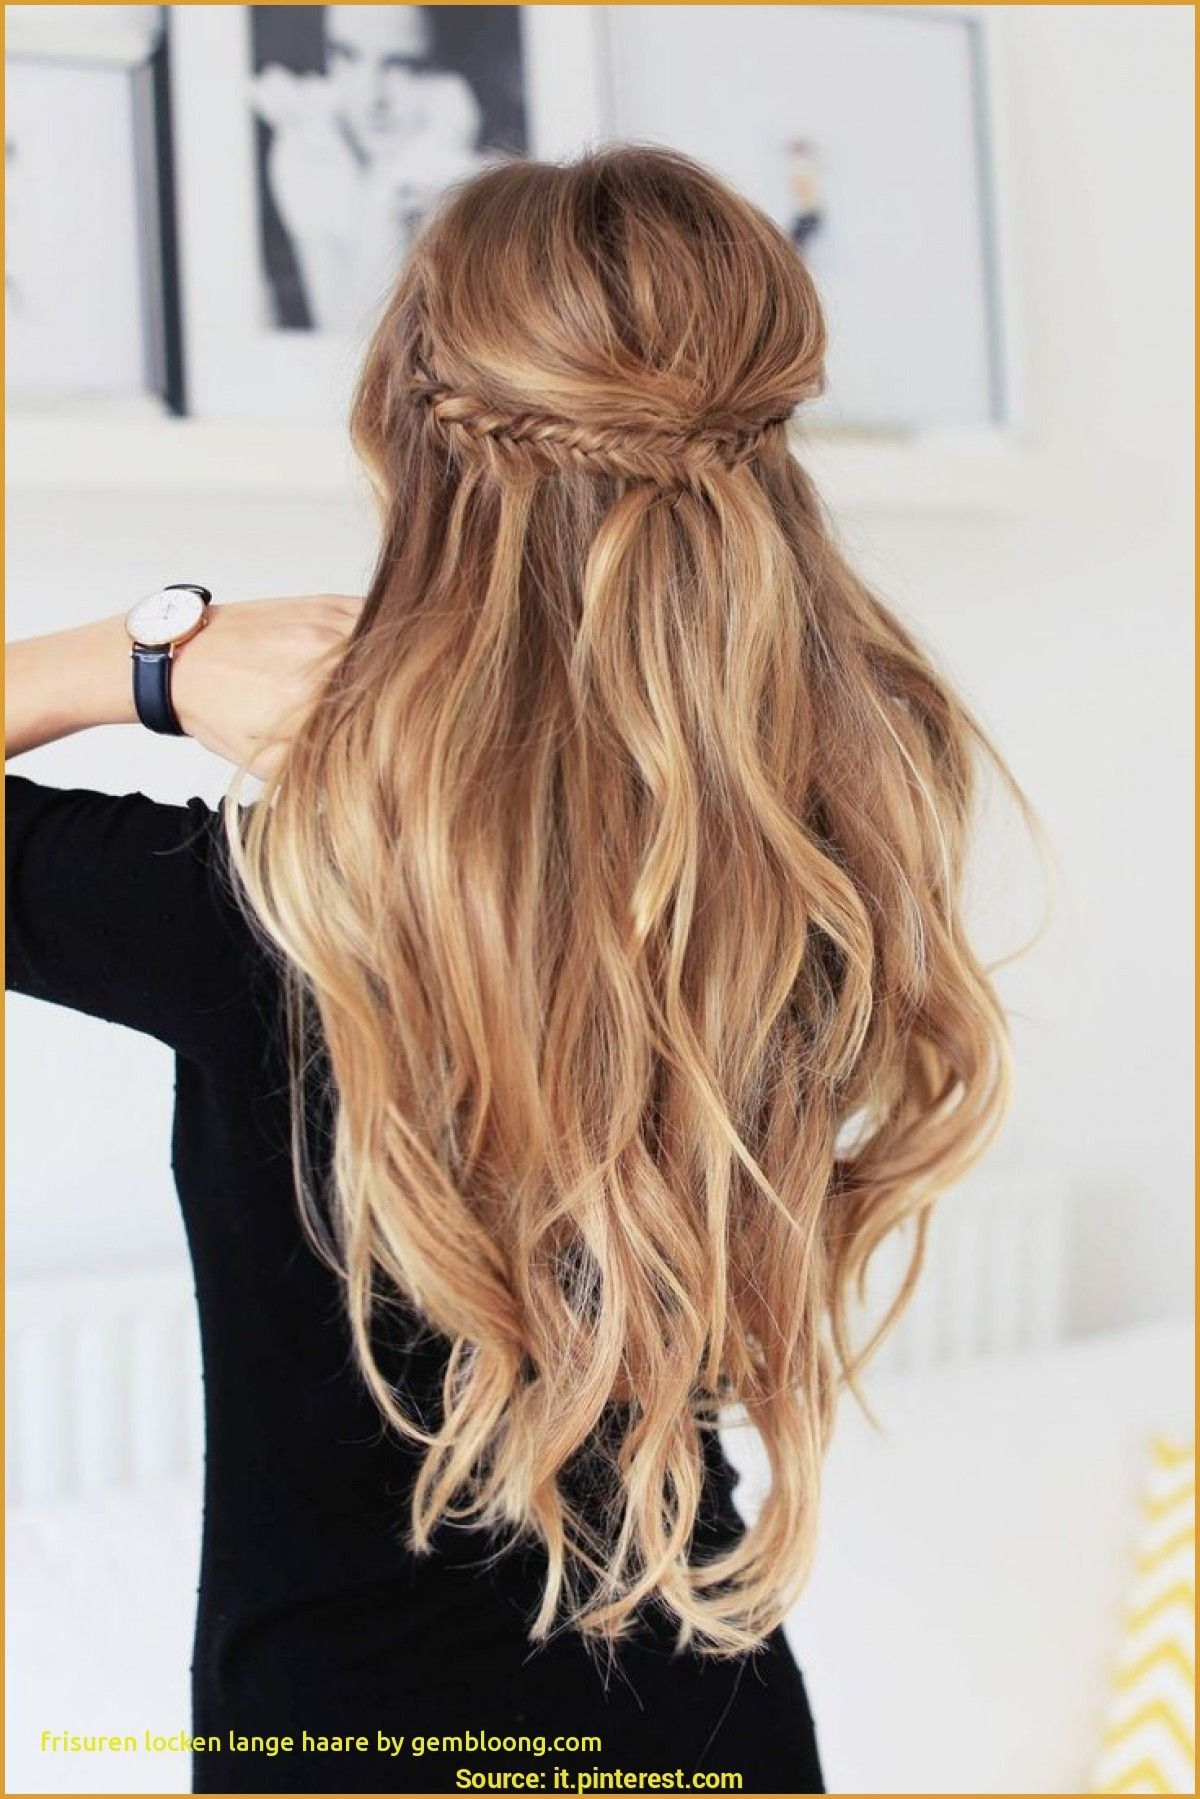 frisuren lange haare mit locken Inspirational Frisuren Locken